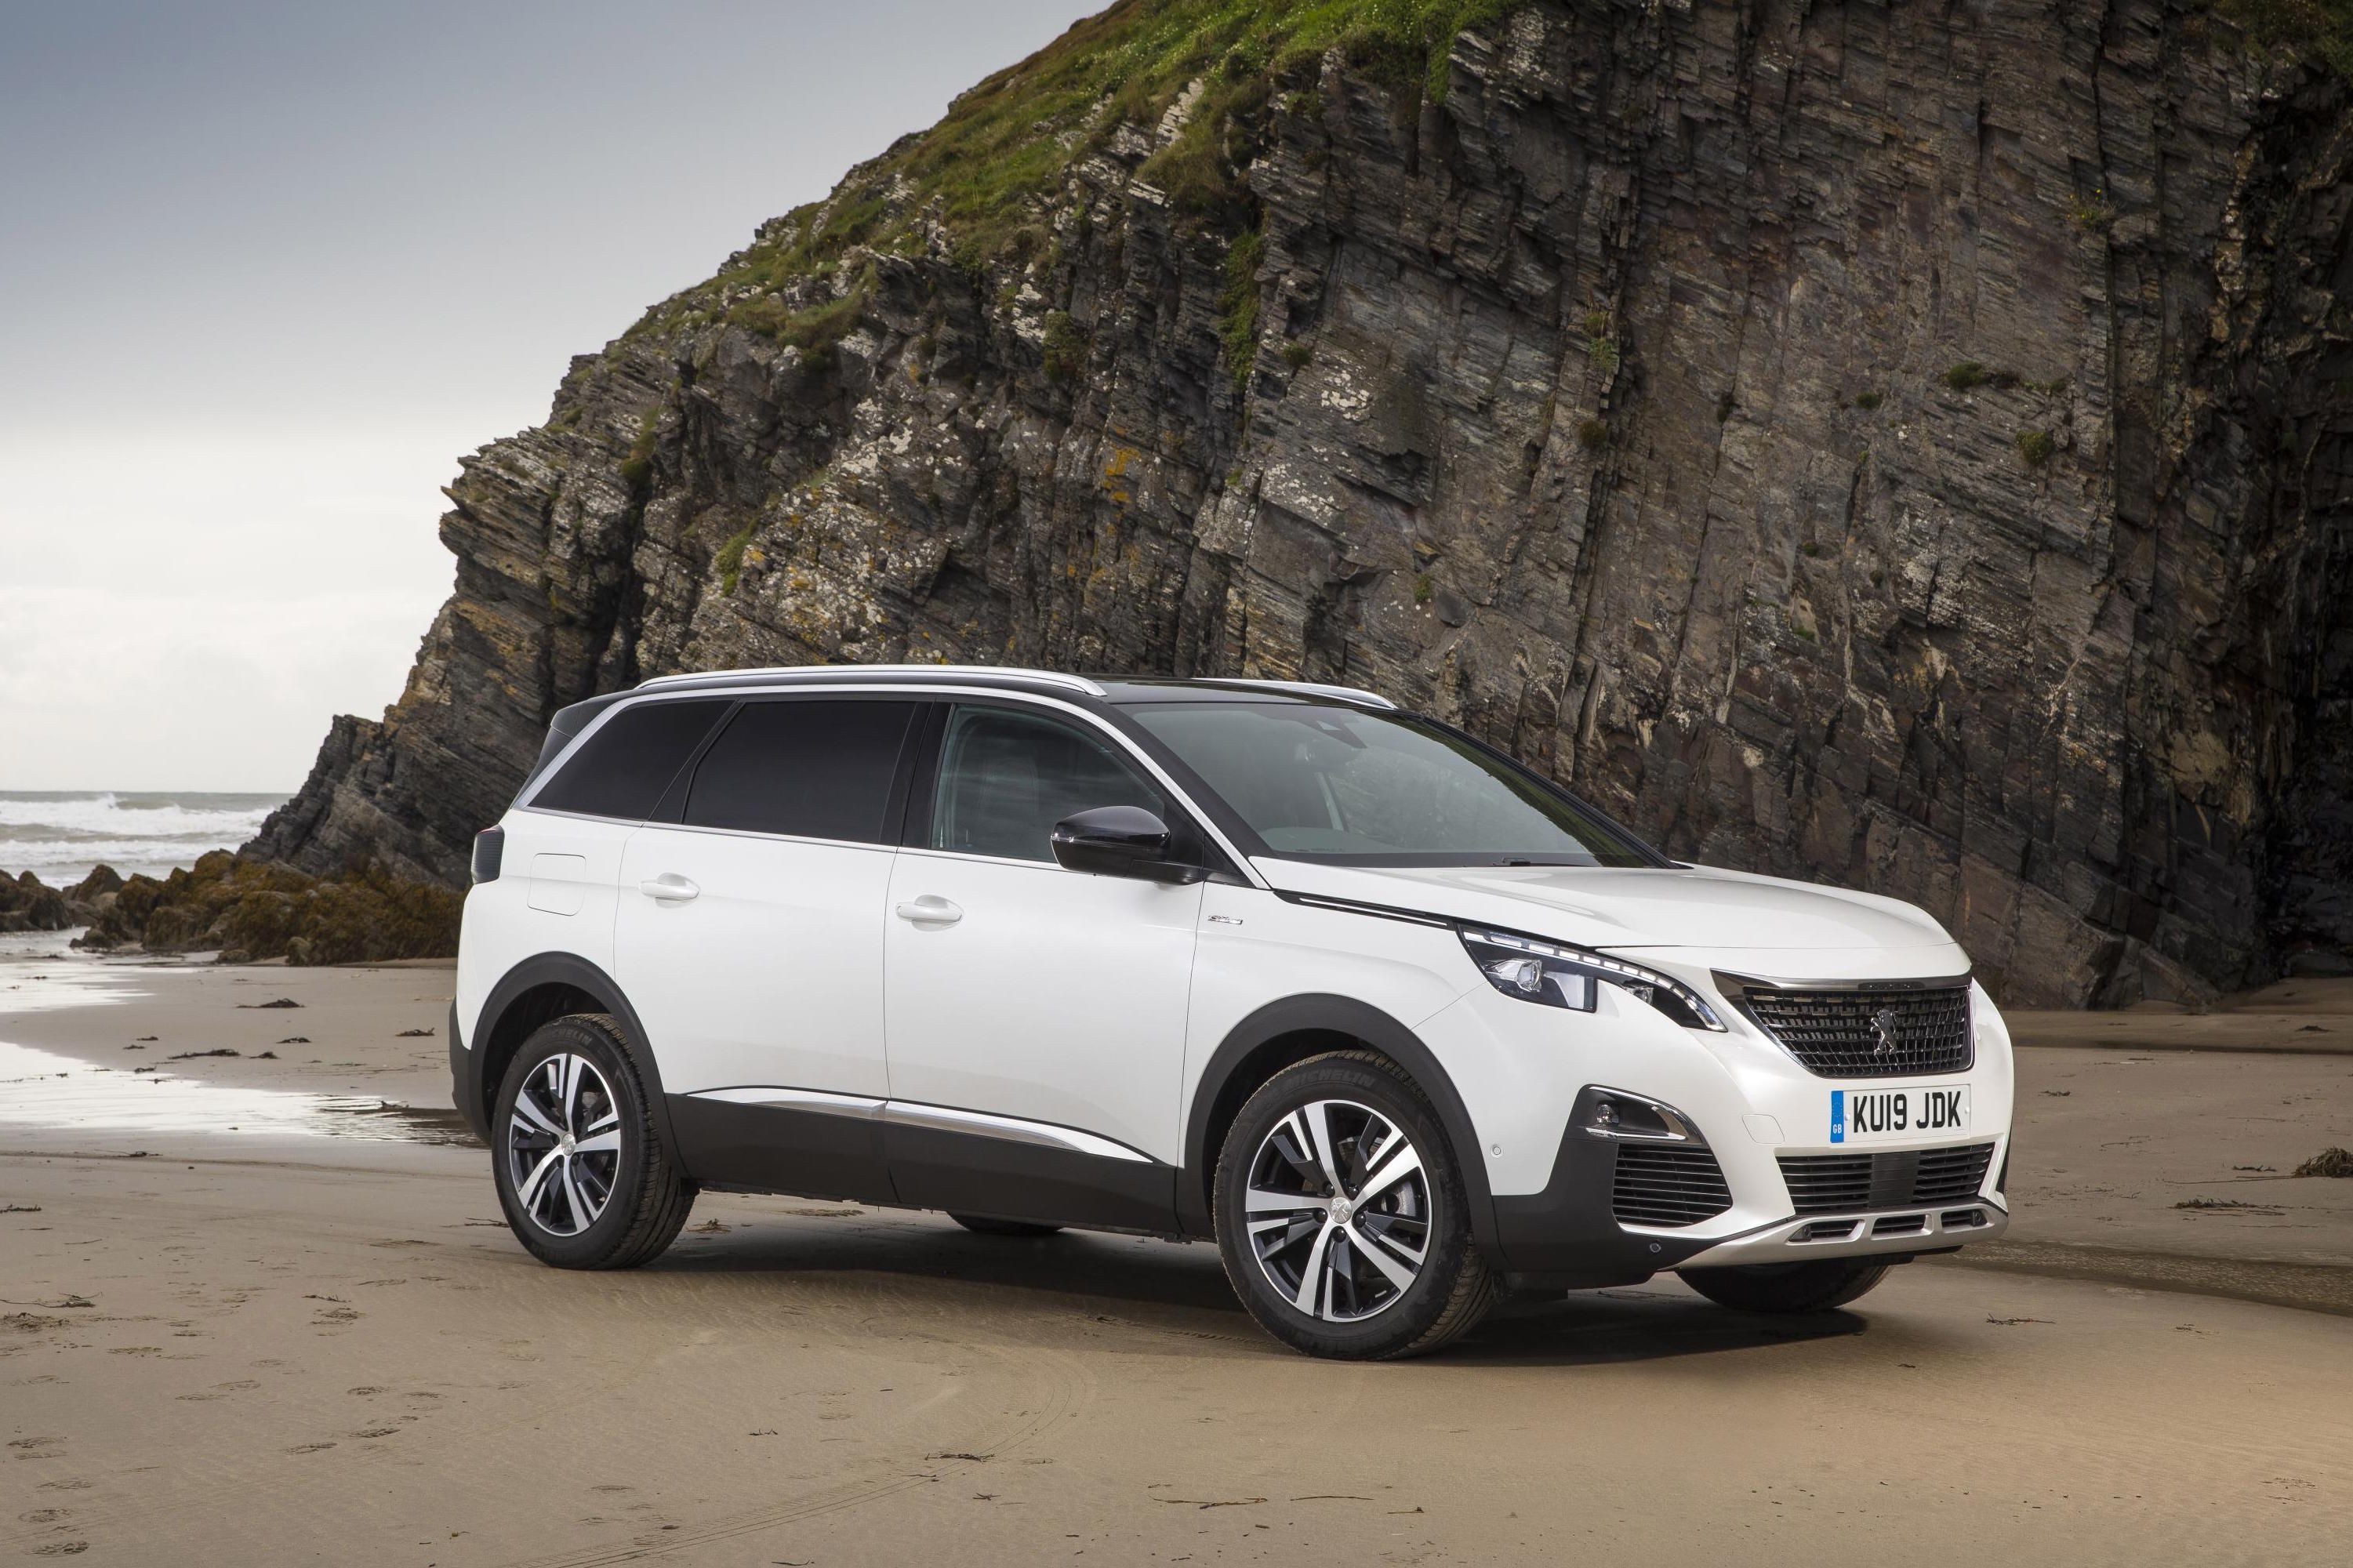 White Peugeot 5008 SUV parked on beach in front of rocky outcrop, facing three-quarters right.